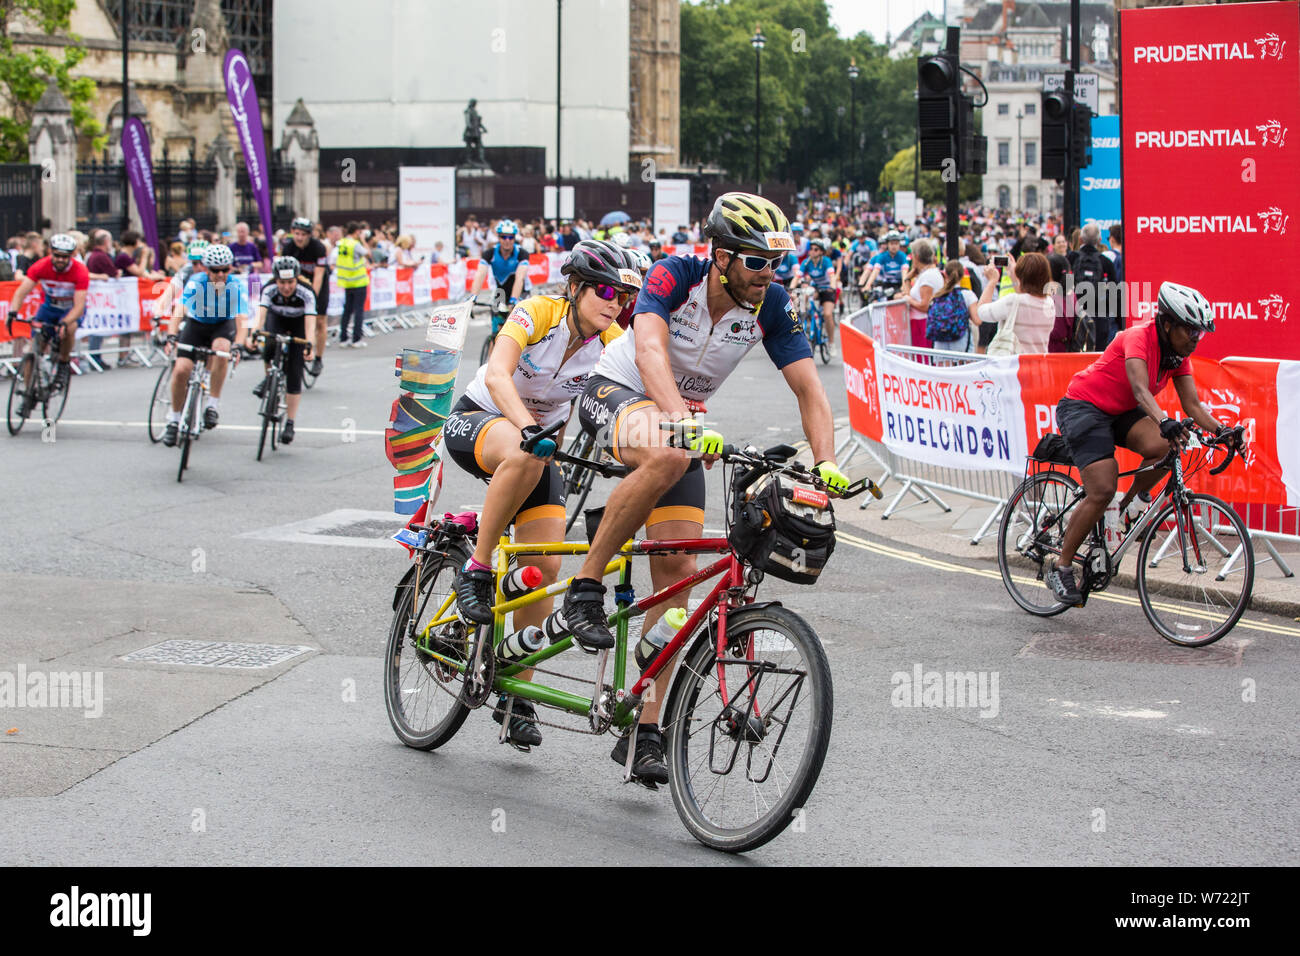 London, UK  4 August, 2019  Riders from the Prudential